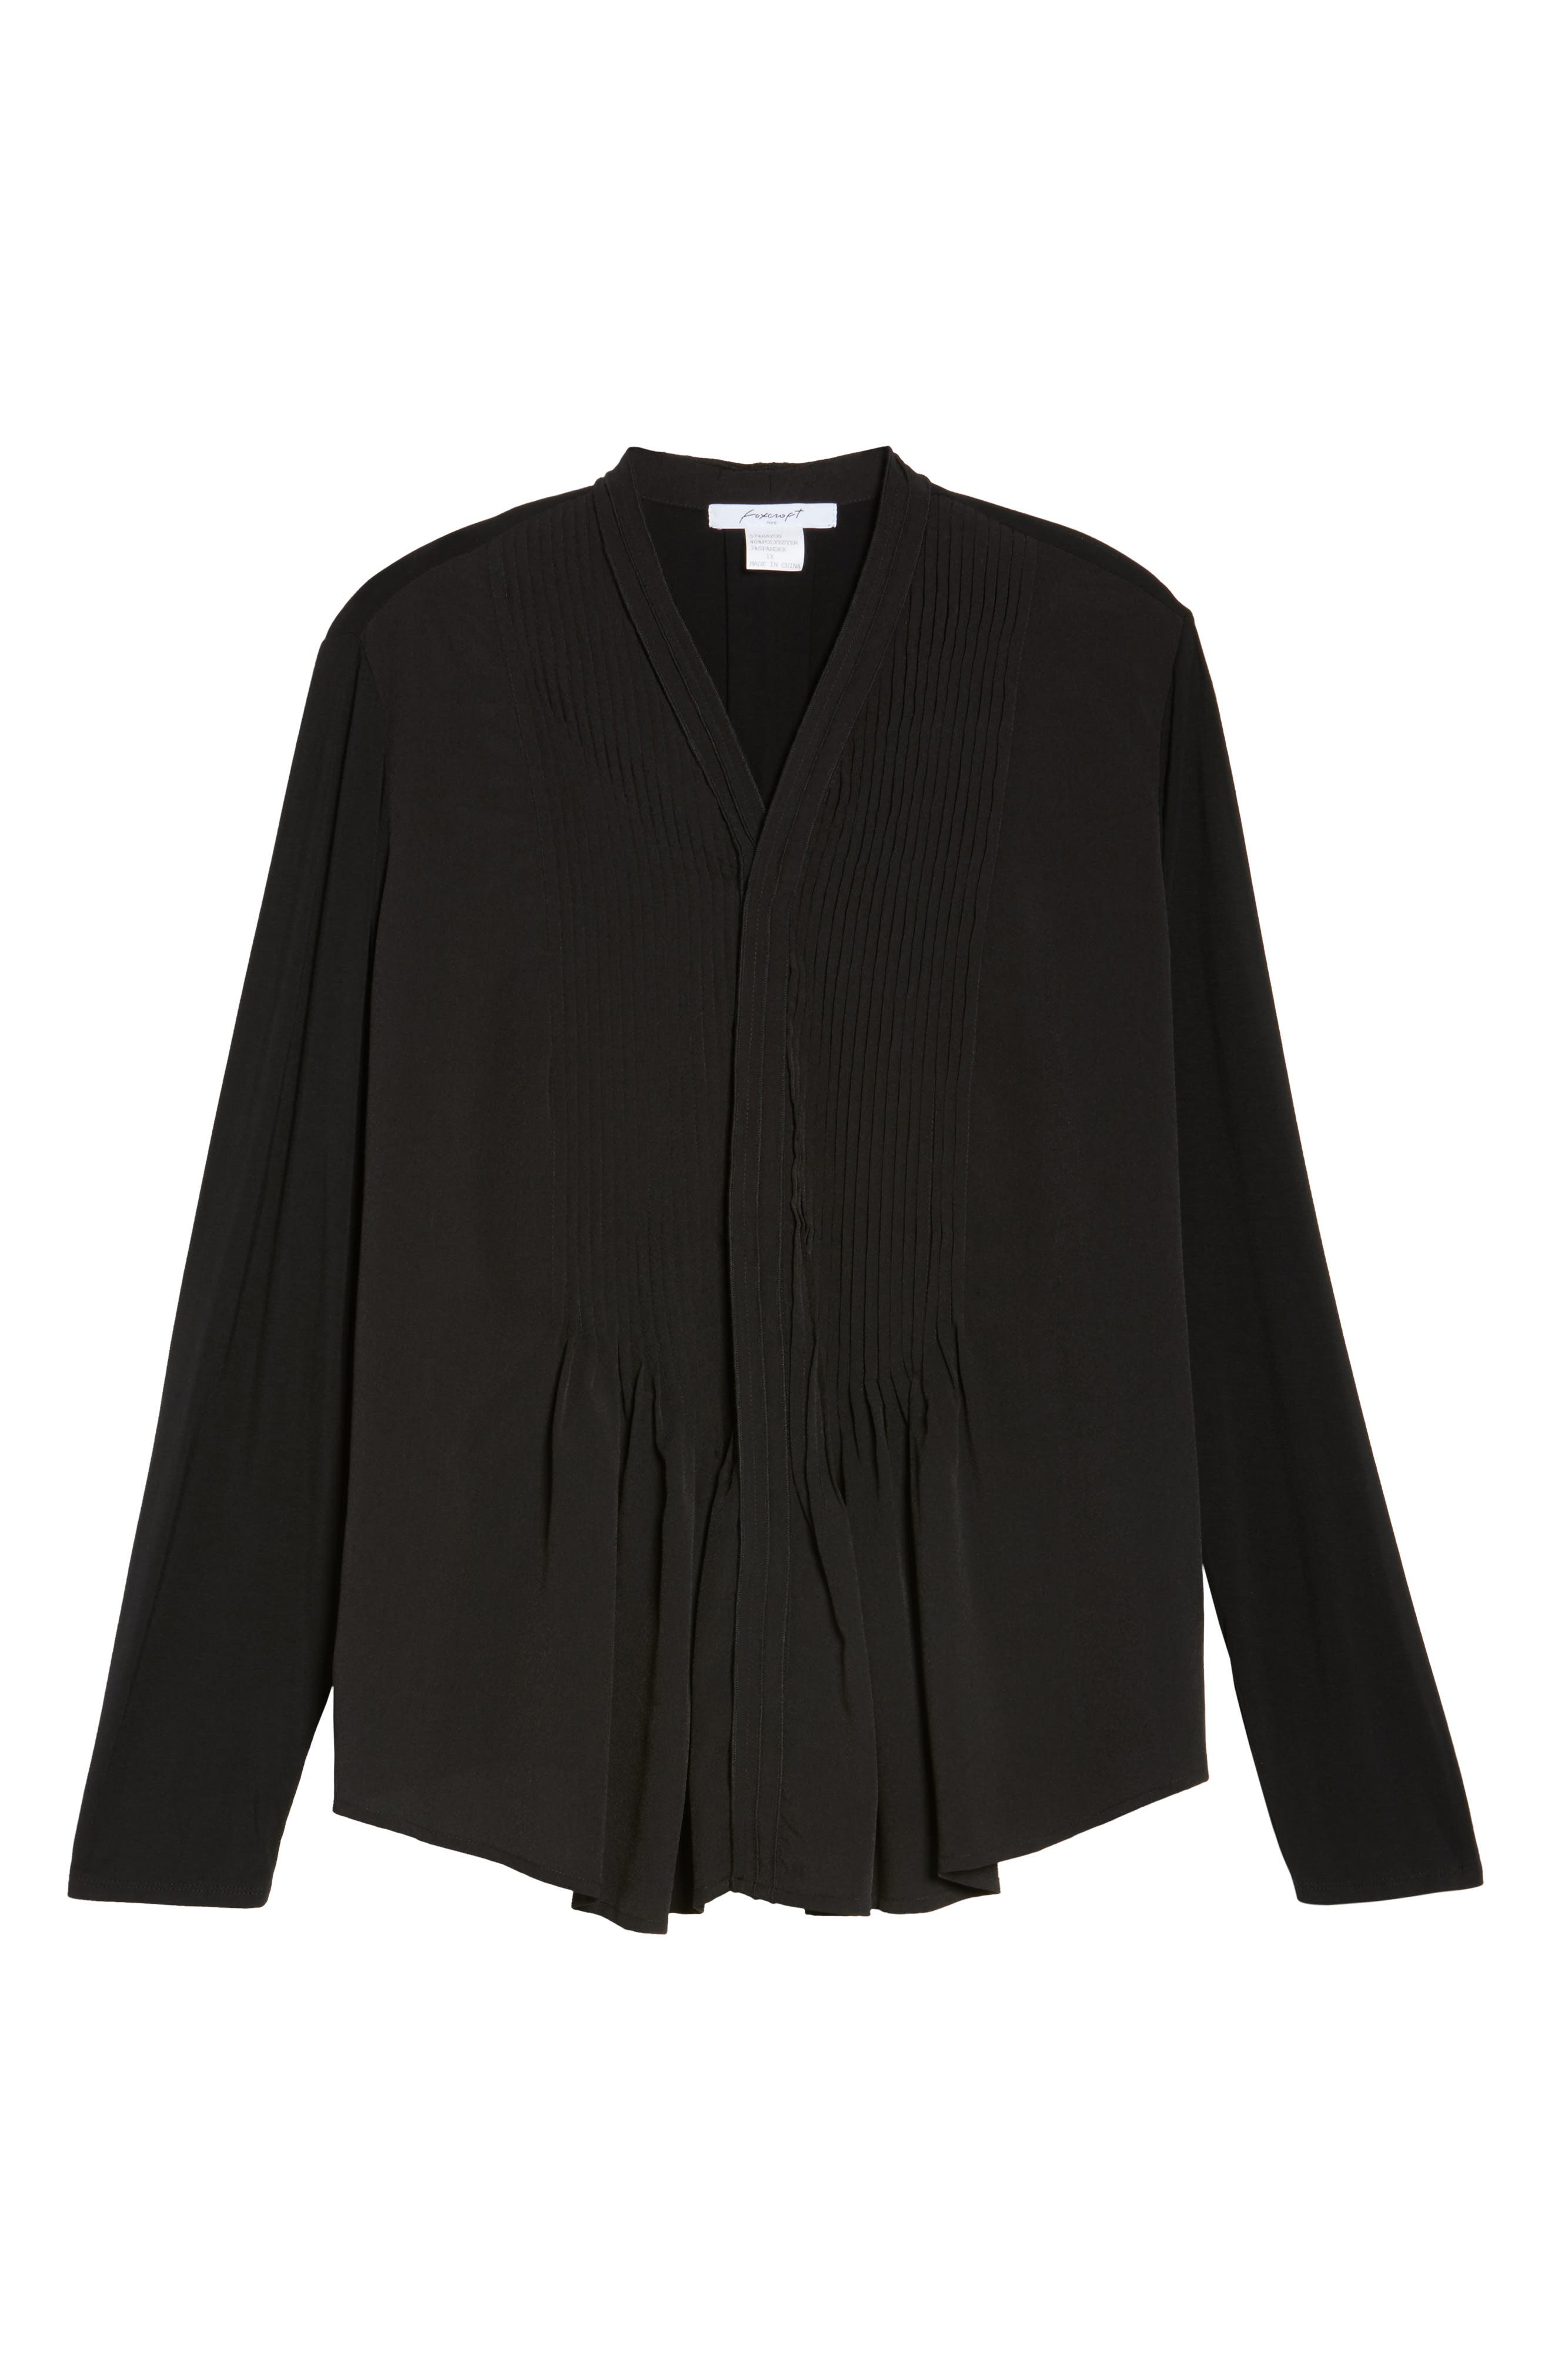 Carrie Crepe & Jersey Top,                             Alternate thumbnail 6, color,                             Black